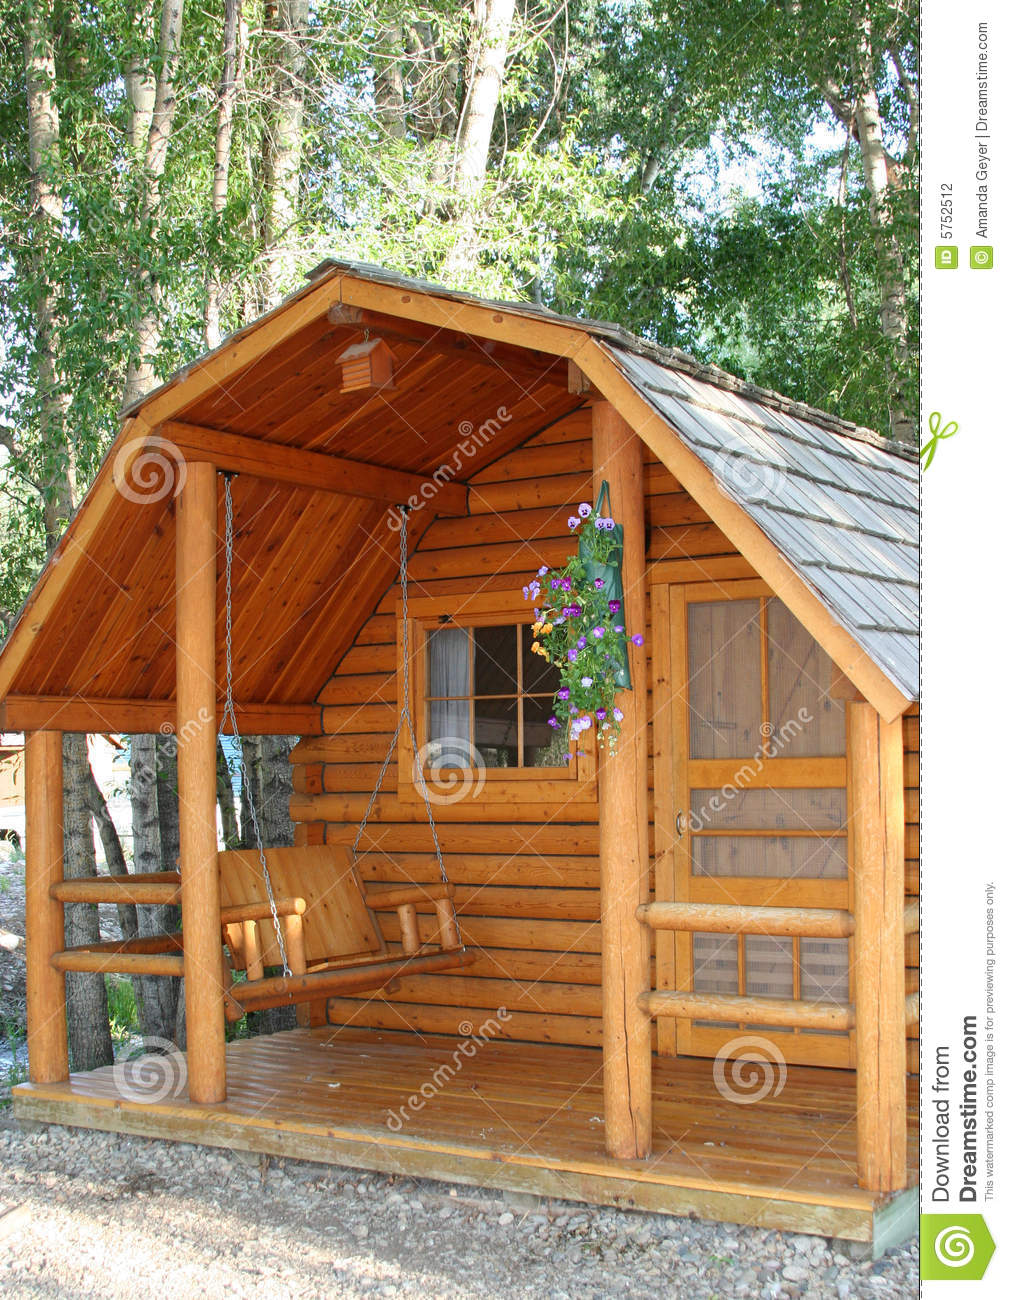 Small wood cabin stock photo image of home vacation for Small cabins and cottages